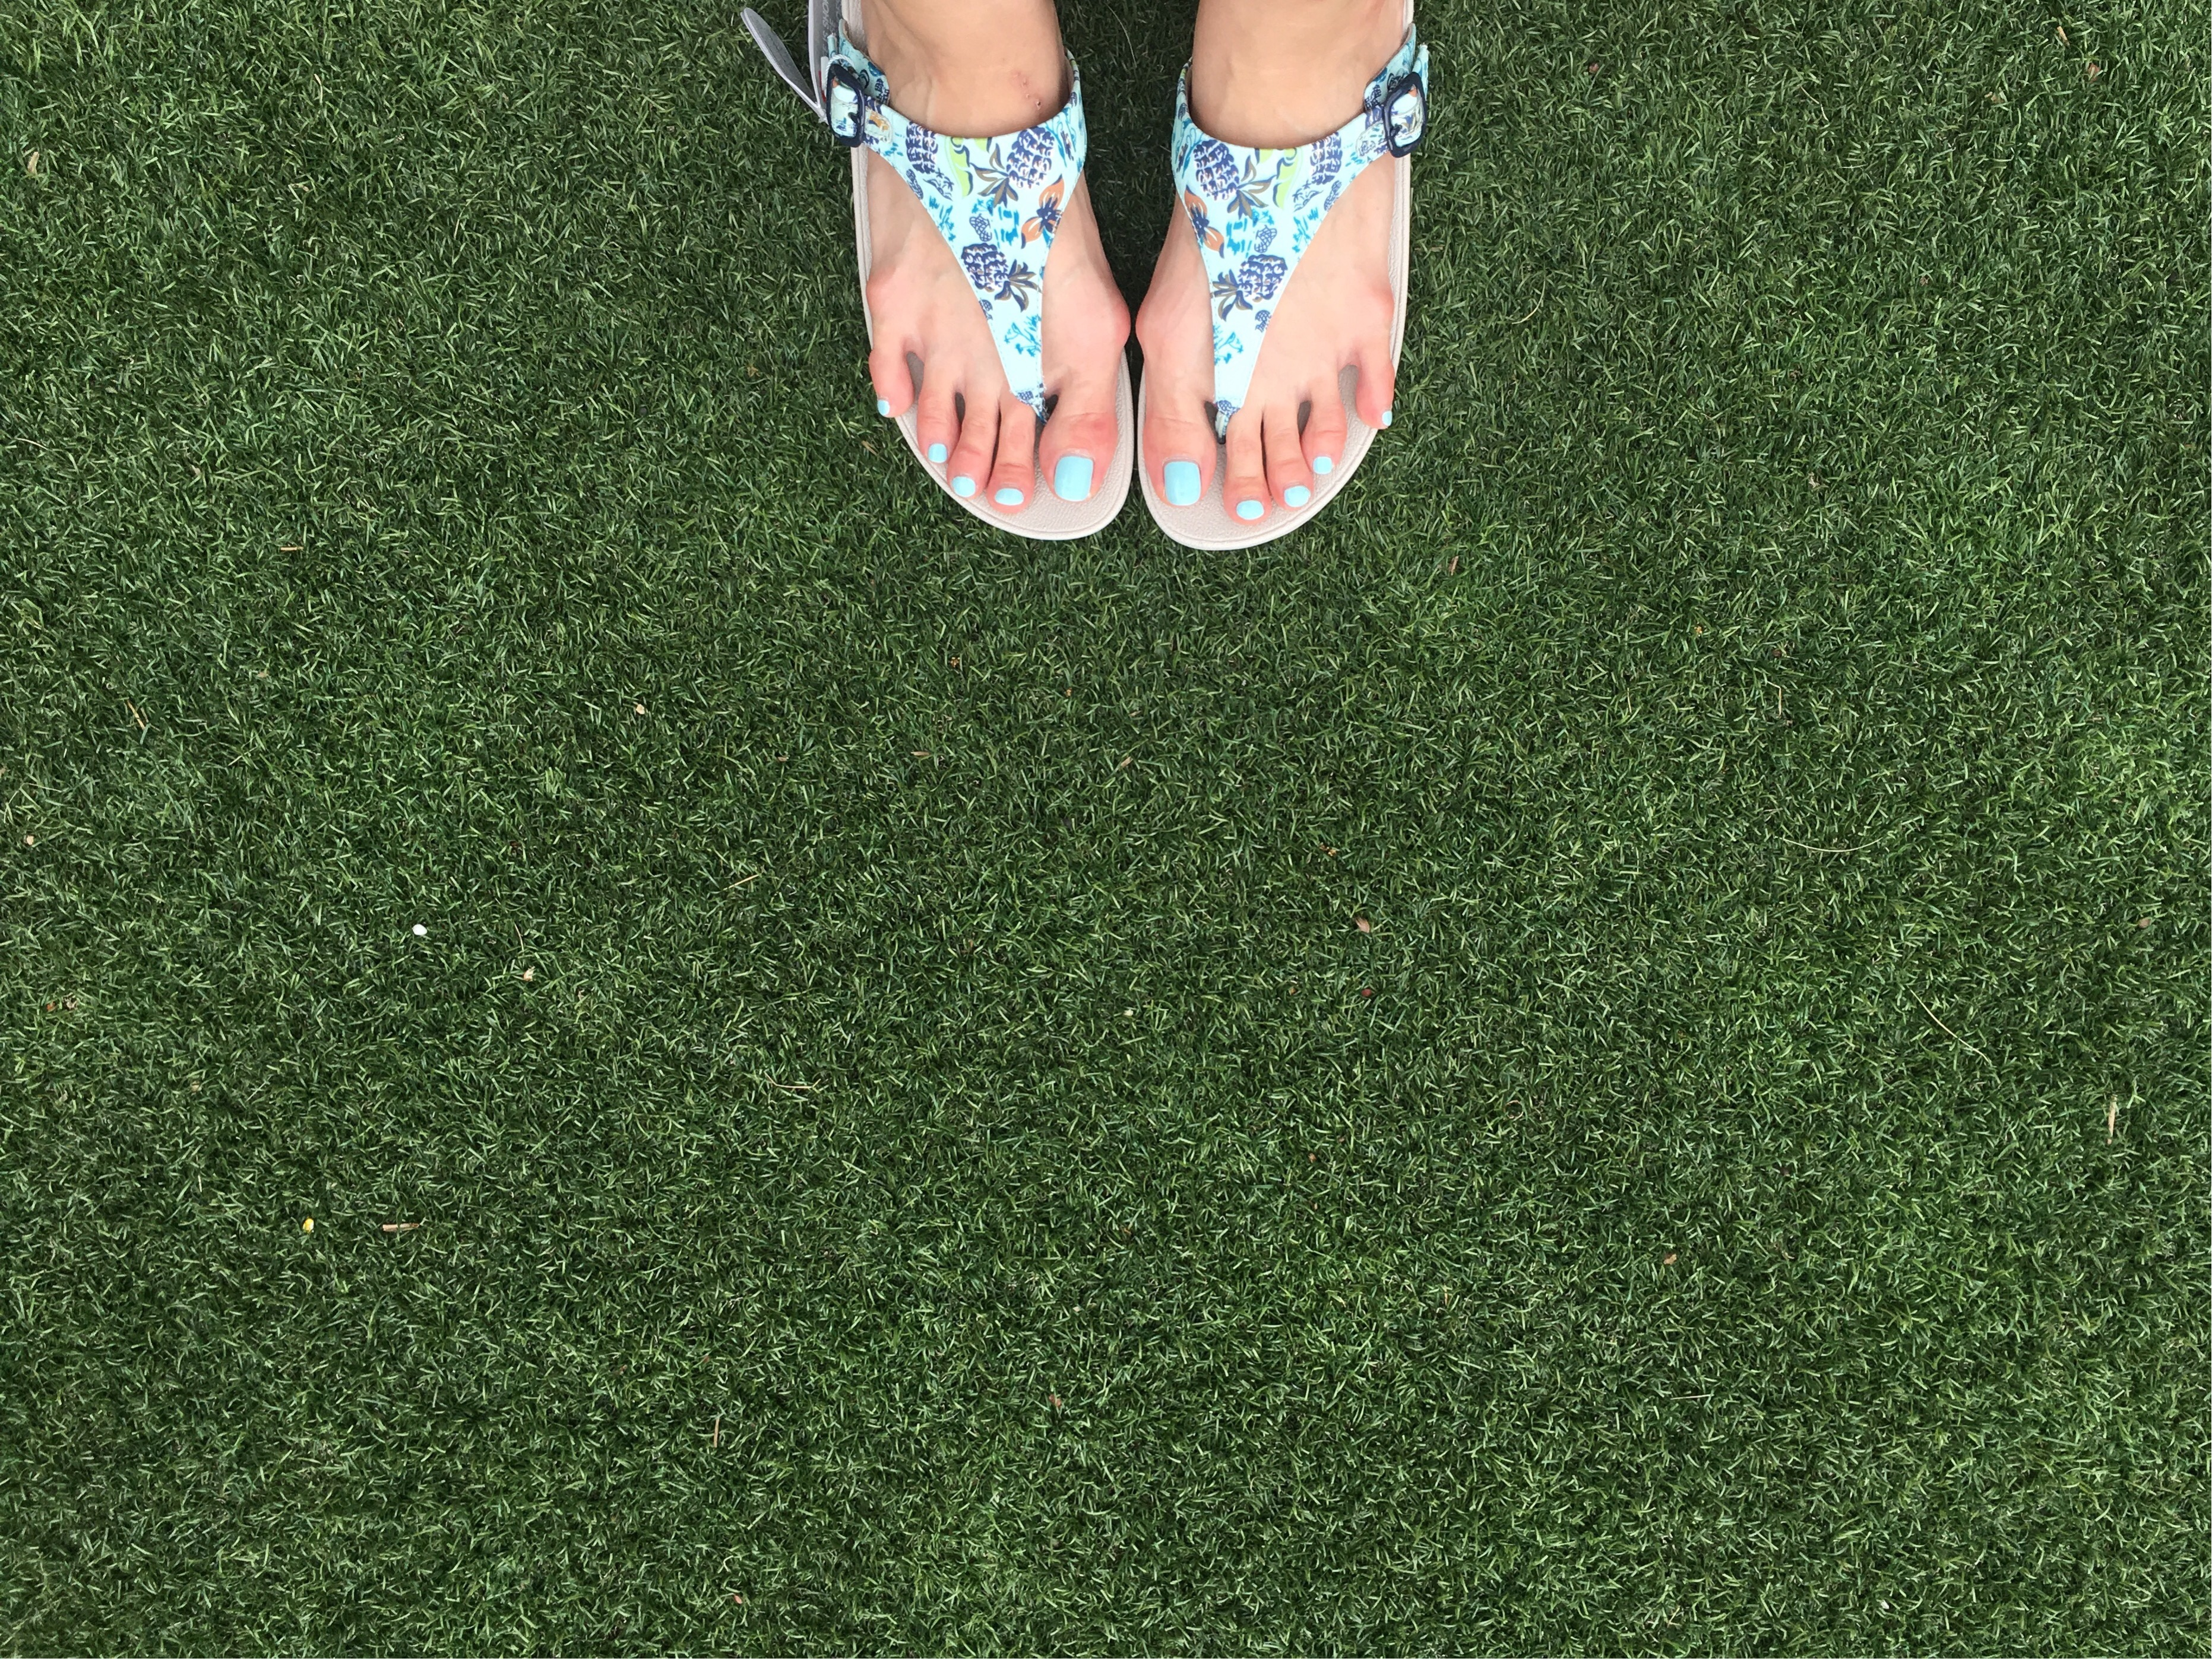 72d603757b0a Excuse my unusually long toes  haha  but can you just admire the free  spirited design with pineapple prints  😍